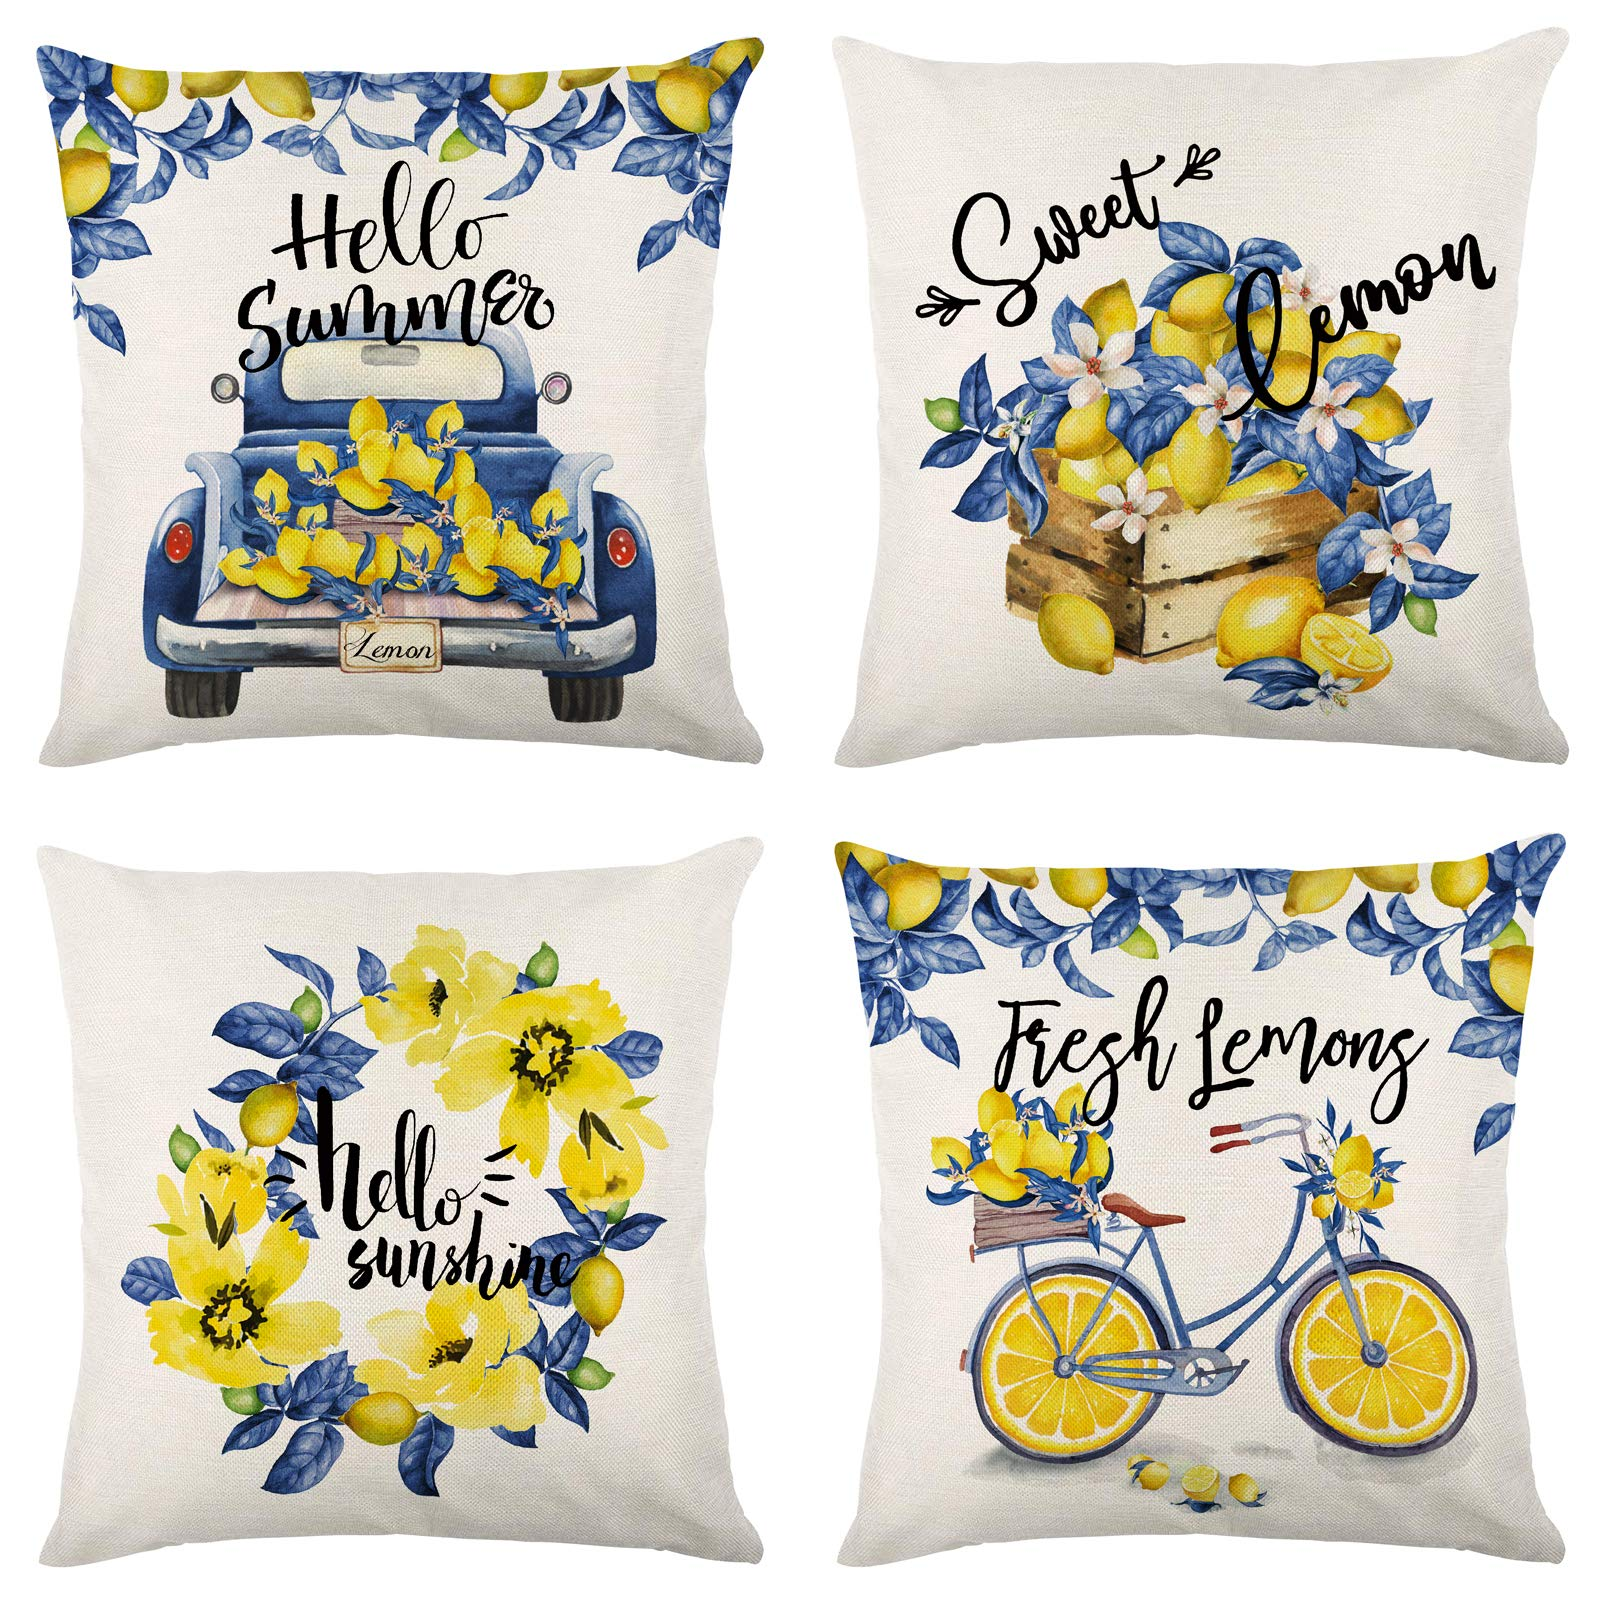 Molili Summer Pillow Covers 18x18 Inch Set of 4 Summer Decorations Lemon Truck Bike Yellow Flowers Throw Farmhouse Pillowcase Cushion Case for Summer Home Decor